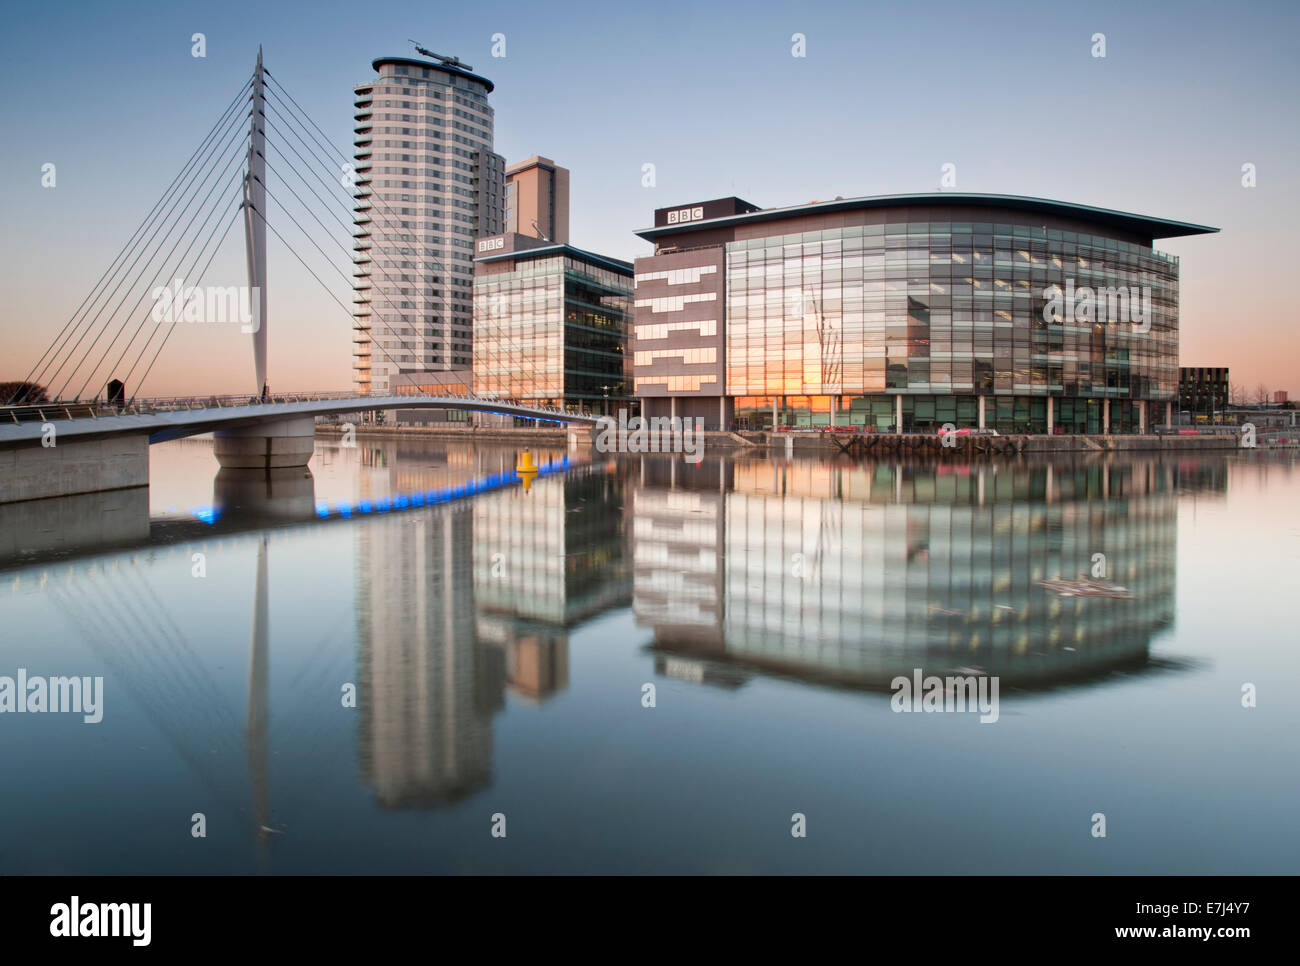 The BBC Studios and Footbridge at MediaCityUK, Salford Quays, Greater Manchester, England, UK - Stock Image